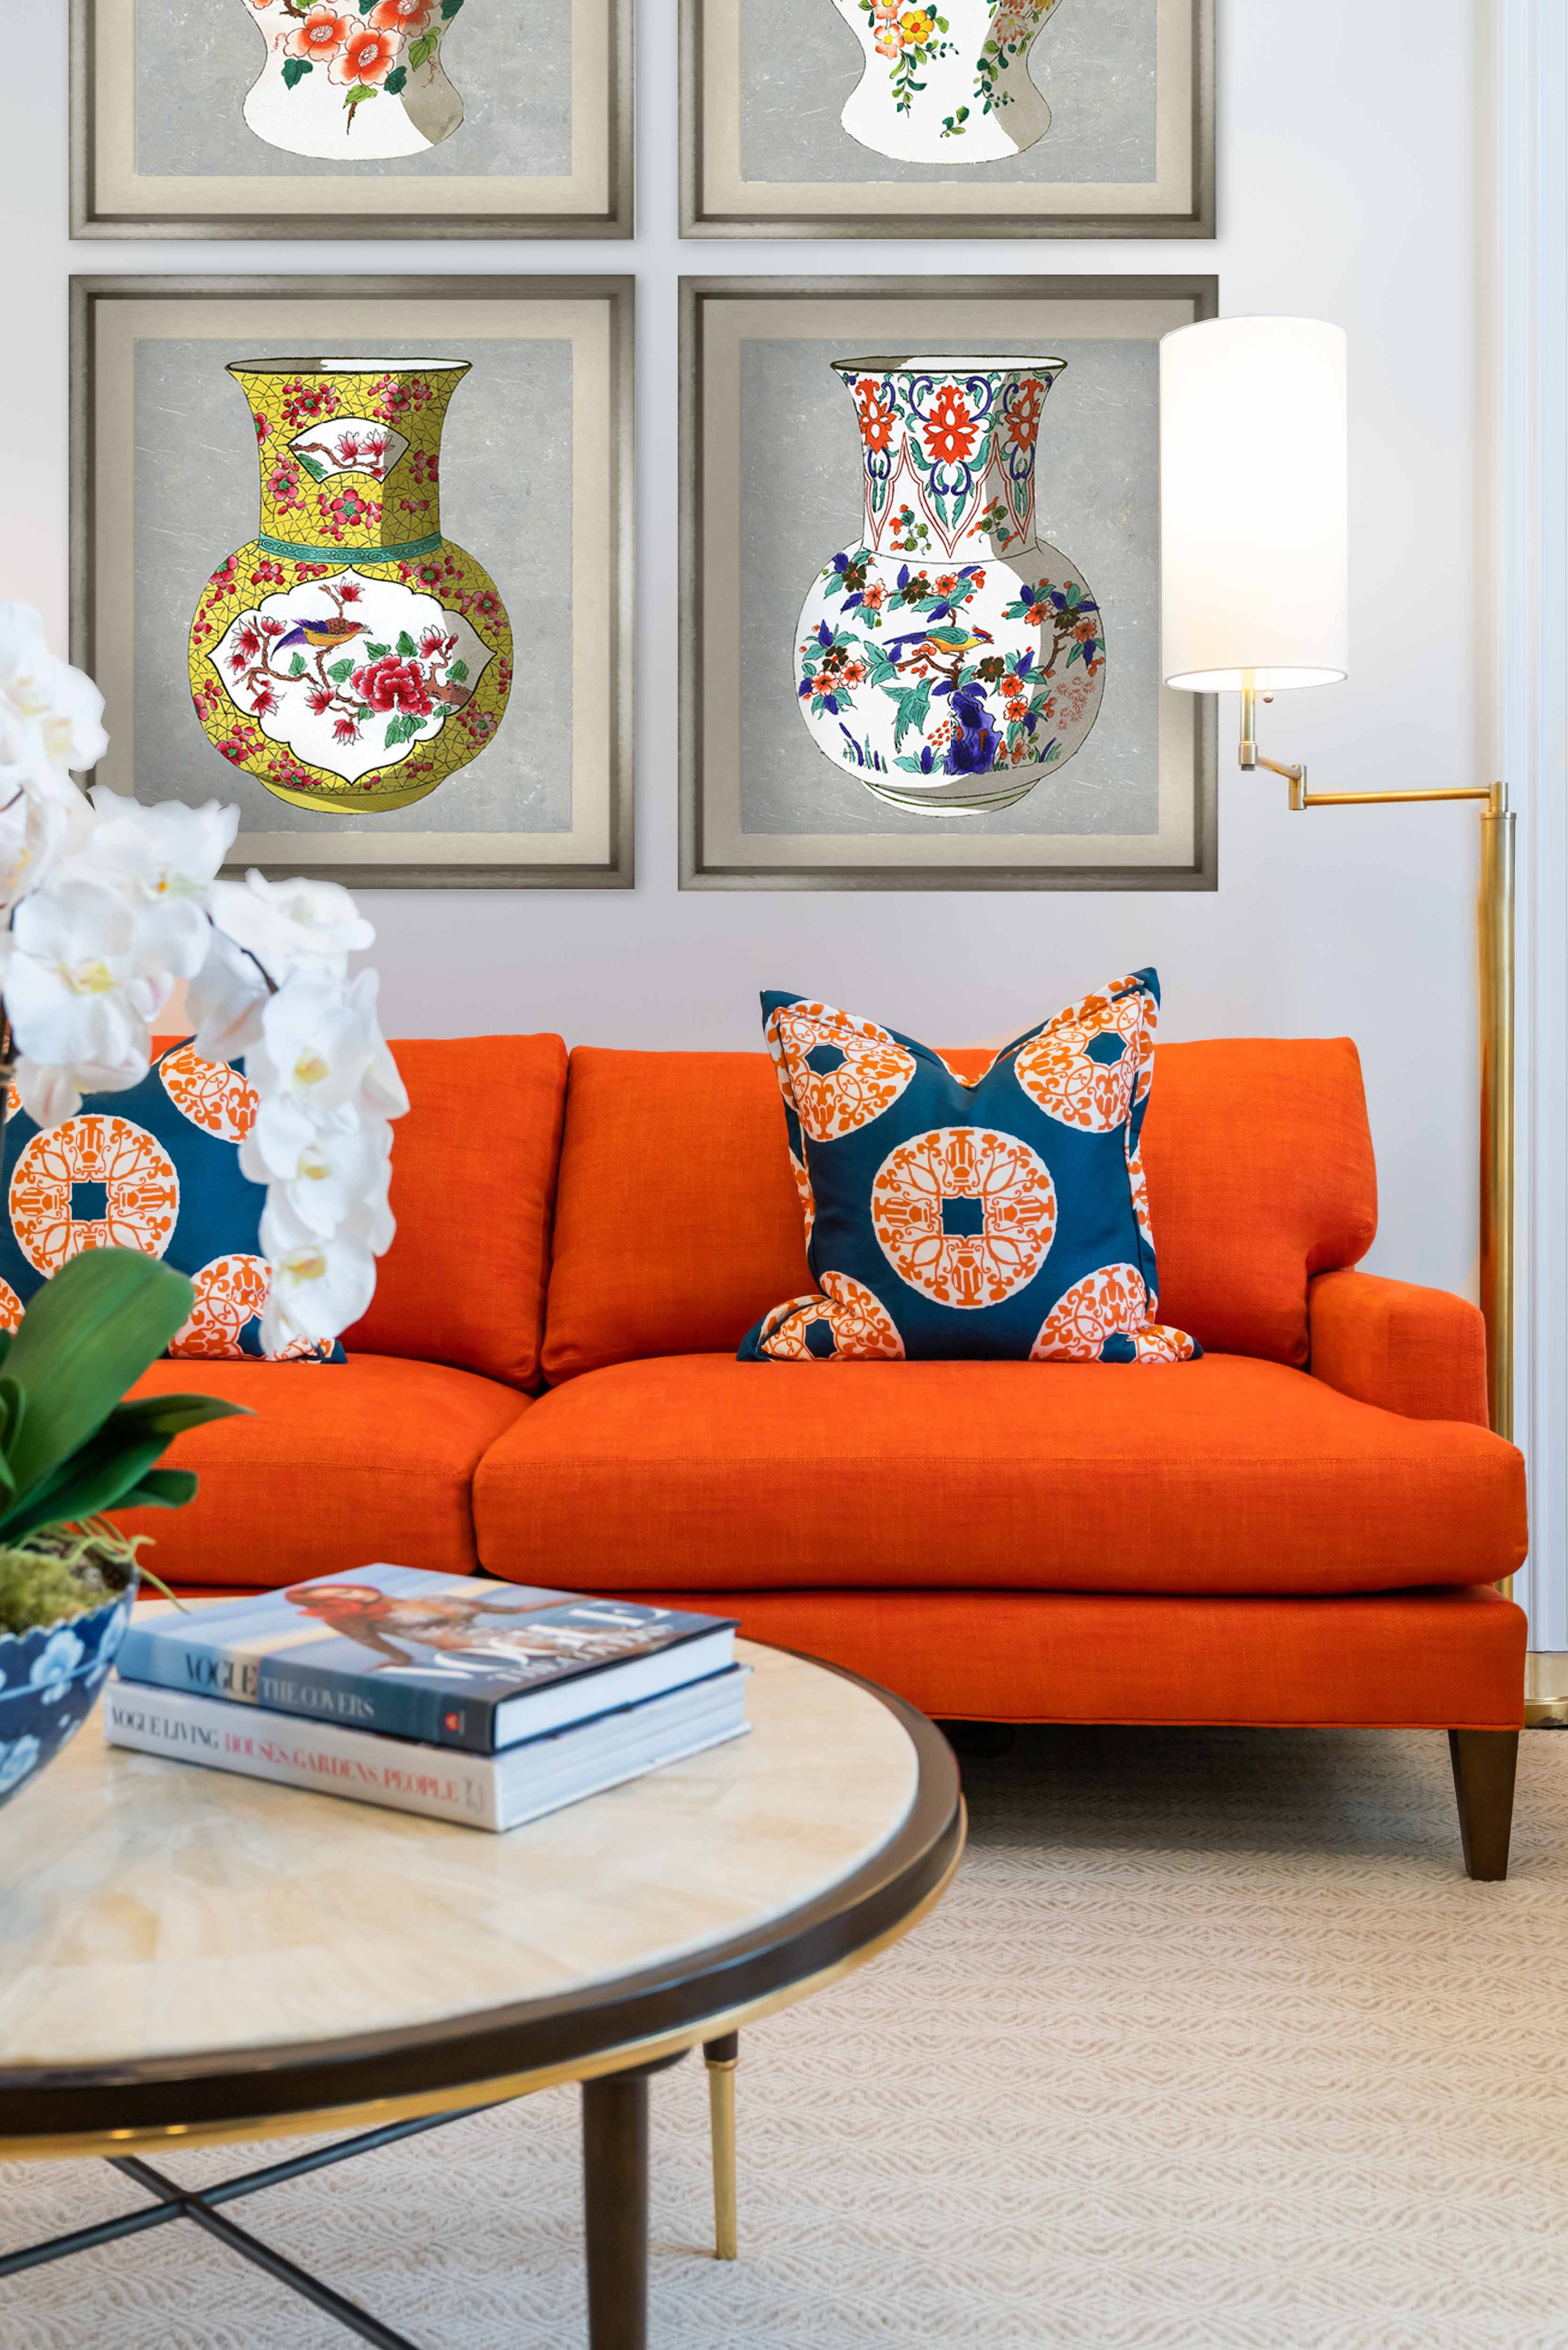 Jeffrey Fisher Home Luxury Interior Design Imagined Home Decor Living Room Orange Sofa